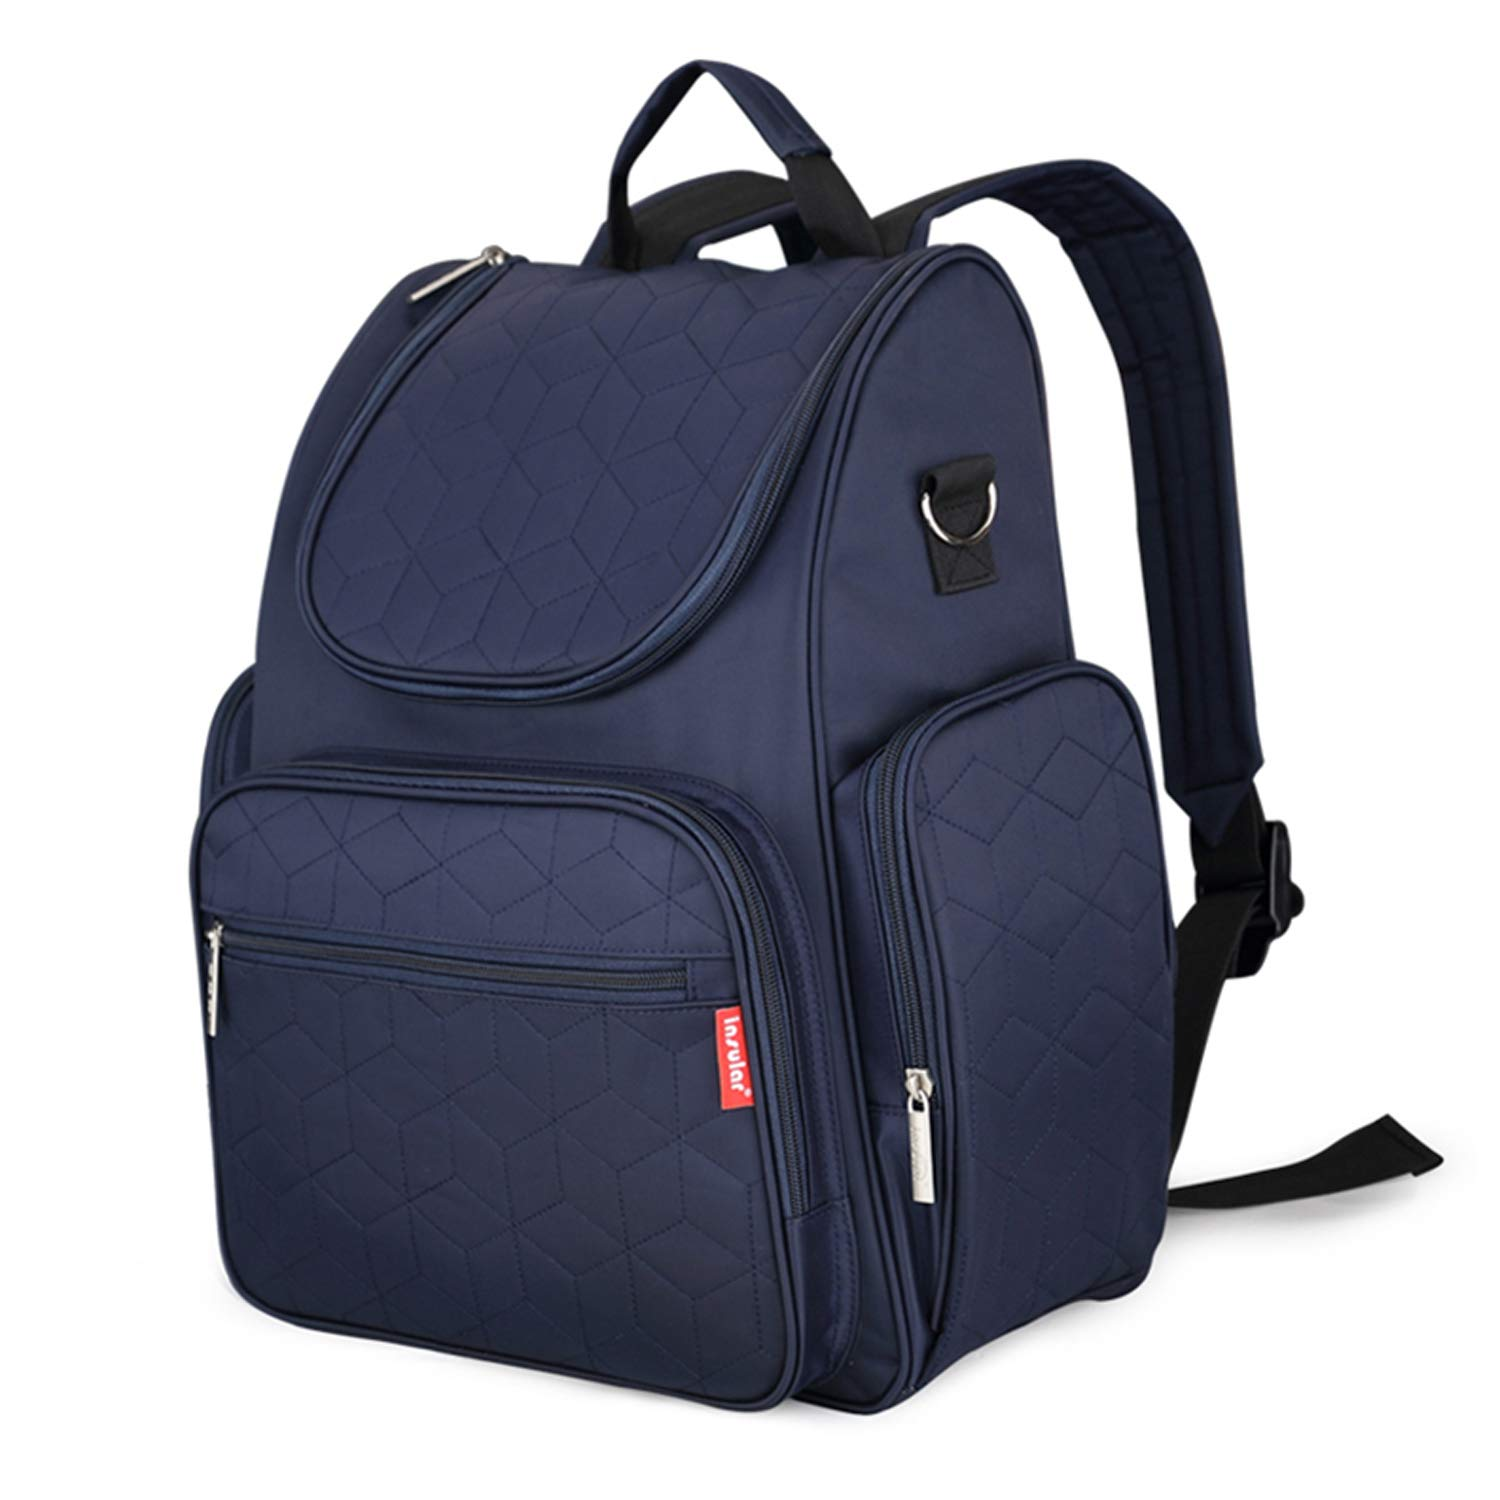 Diaper Bag Backpack with Stroller Straps, Changing Pad and Insulated Pockets - (Blue)